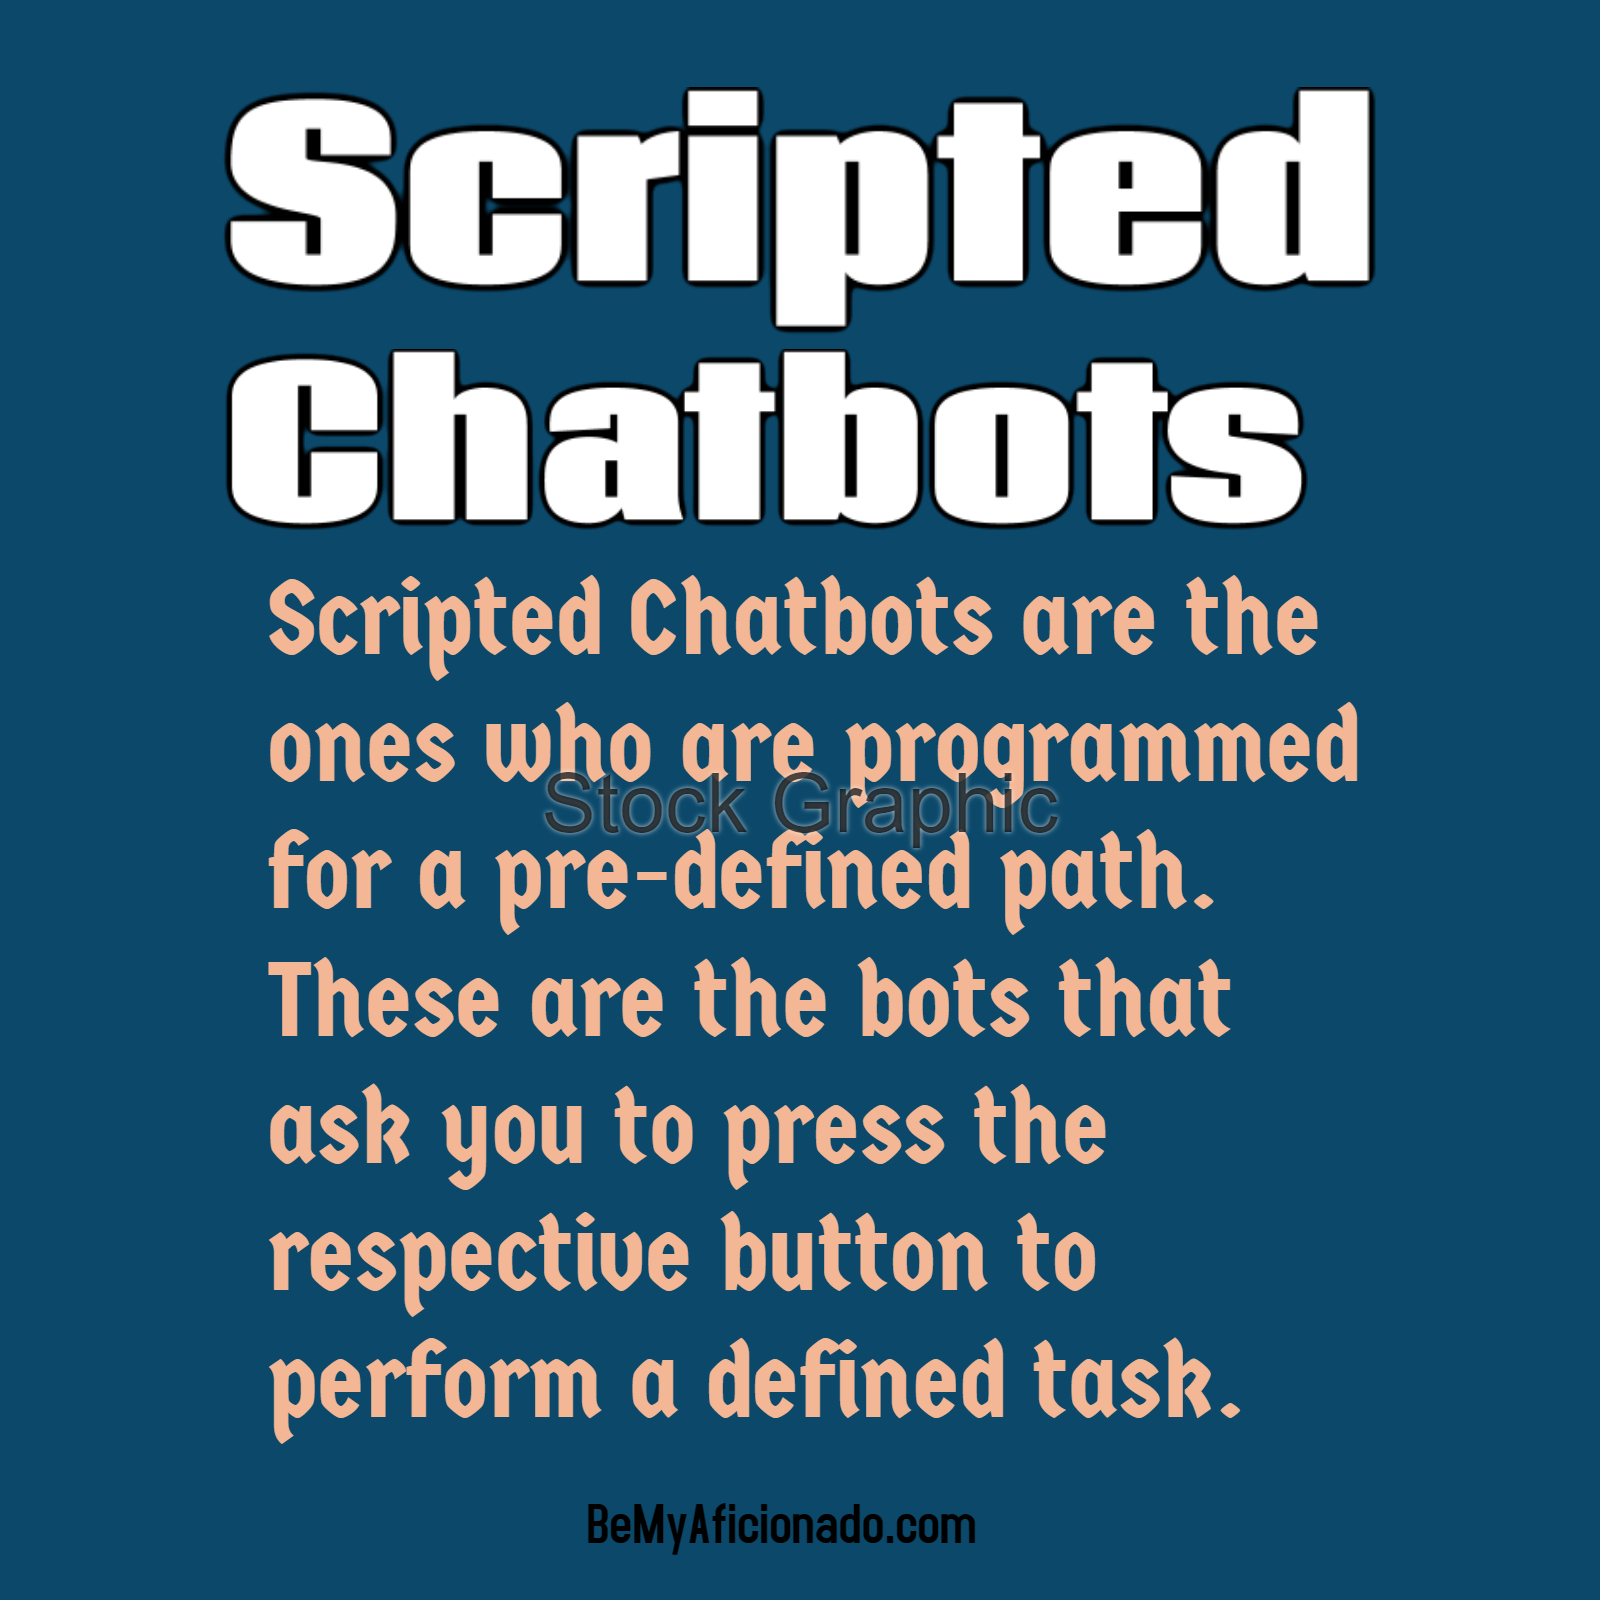 Scripted Chatbots are the ones who are programmed for a pre-defined path. These are the bots that ask you to press the respective button to perform a defined task.